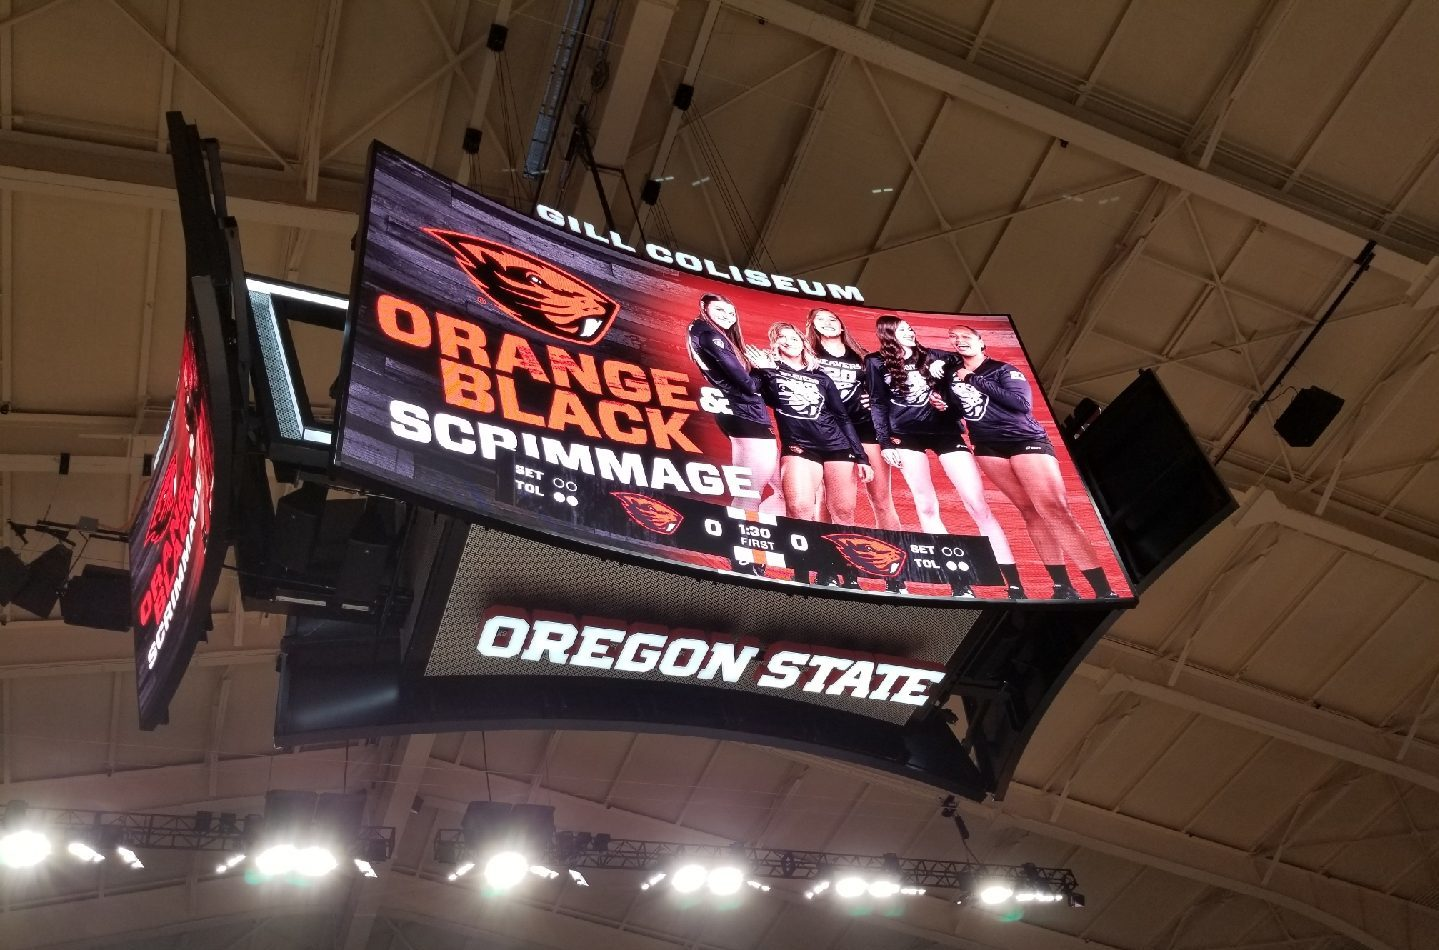 Oregon State, Gill Coliseum, the gill, College Sports, collegiate sports, basketball, led display, videoboard, video board, scoreboard, center hung, centerhung, center-hung, NCAA, beavers, men's basketball, intercollegiate, Pac-12 conference, AV Consultant, A/V consultant